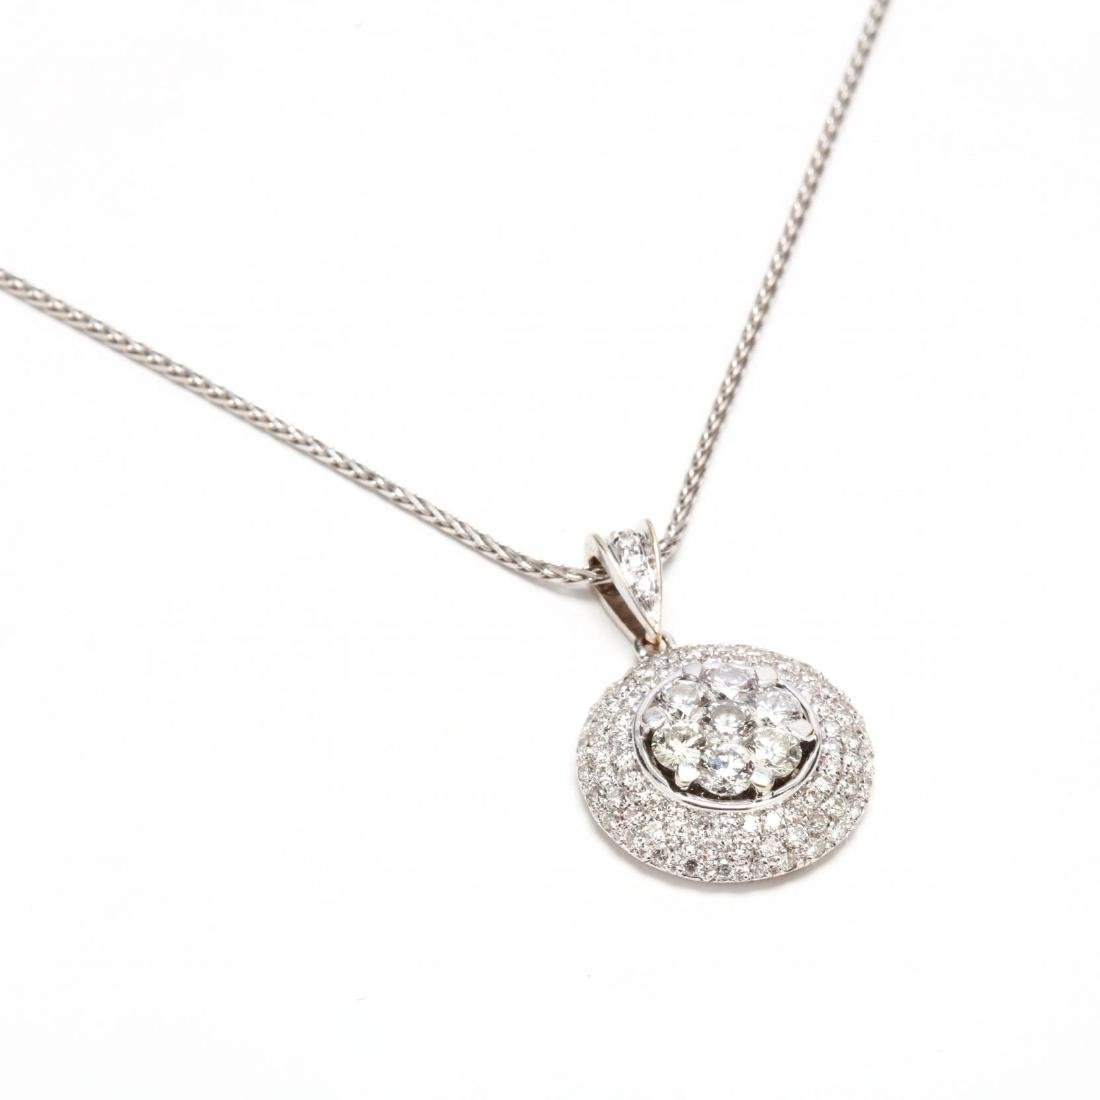 18KT White Gold and Diamond Cluster Pendant Necklace